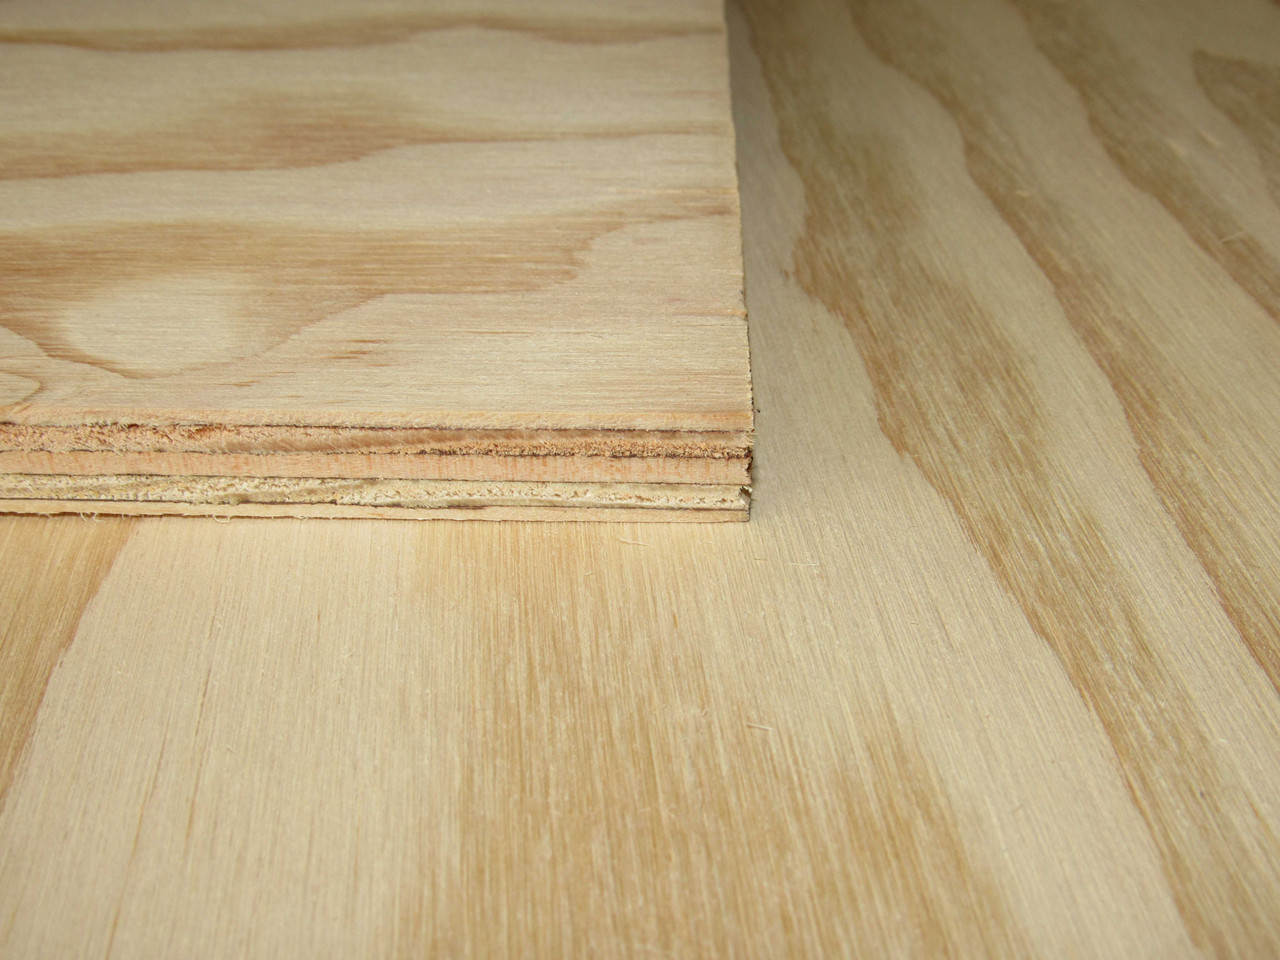 Ab Fir Marine Grade Plywood Full Sheets 48 X96 4 X 8 Total Wood Store